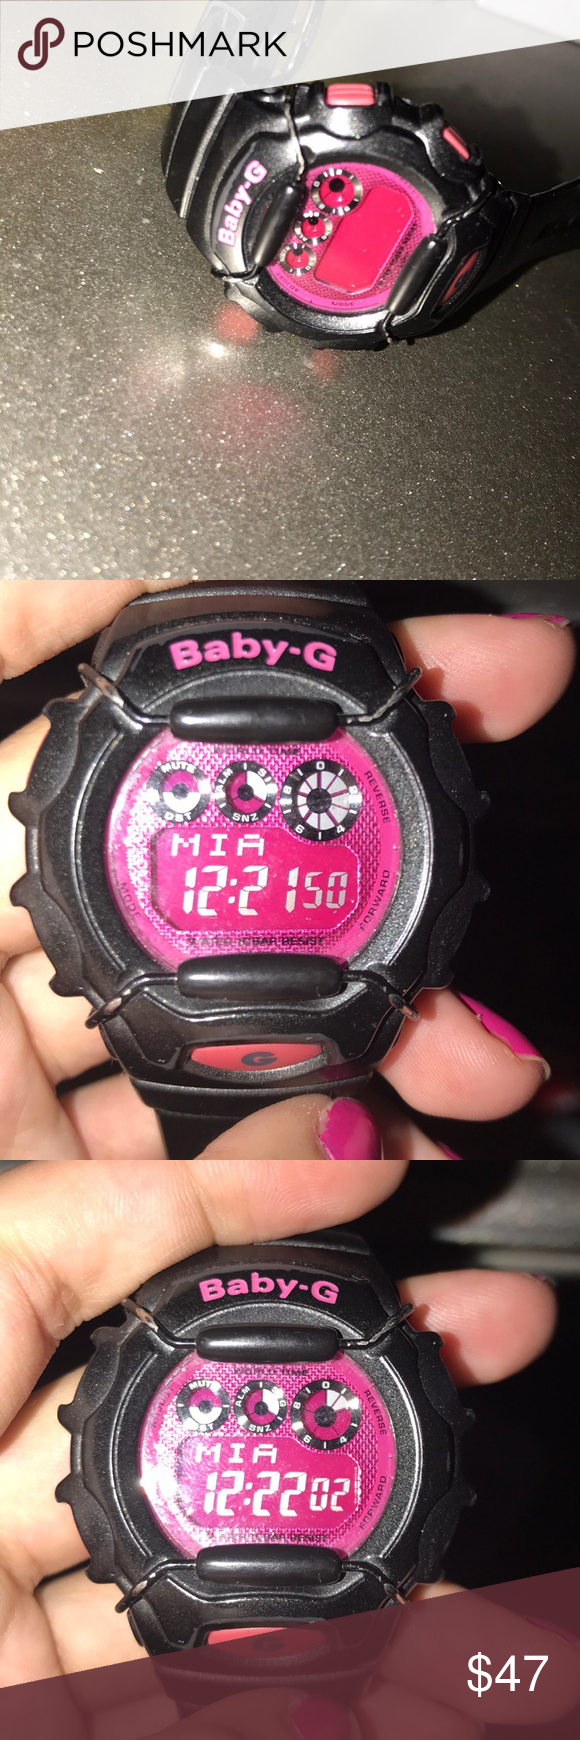 6c2d38abba Black and PINK baby g-shock Worn couple times Small scratch G-Shock ...